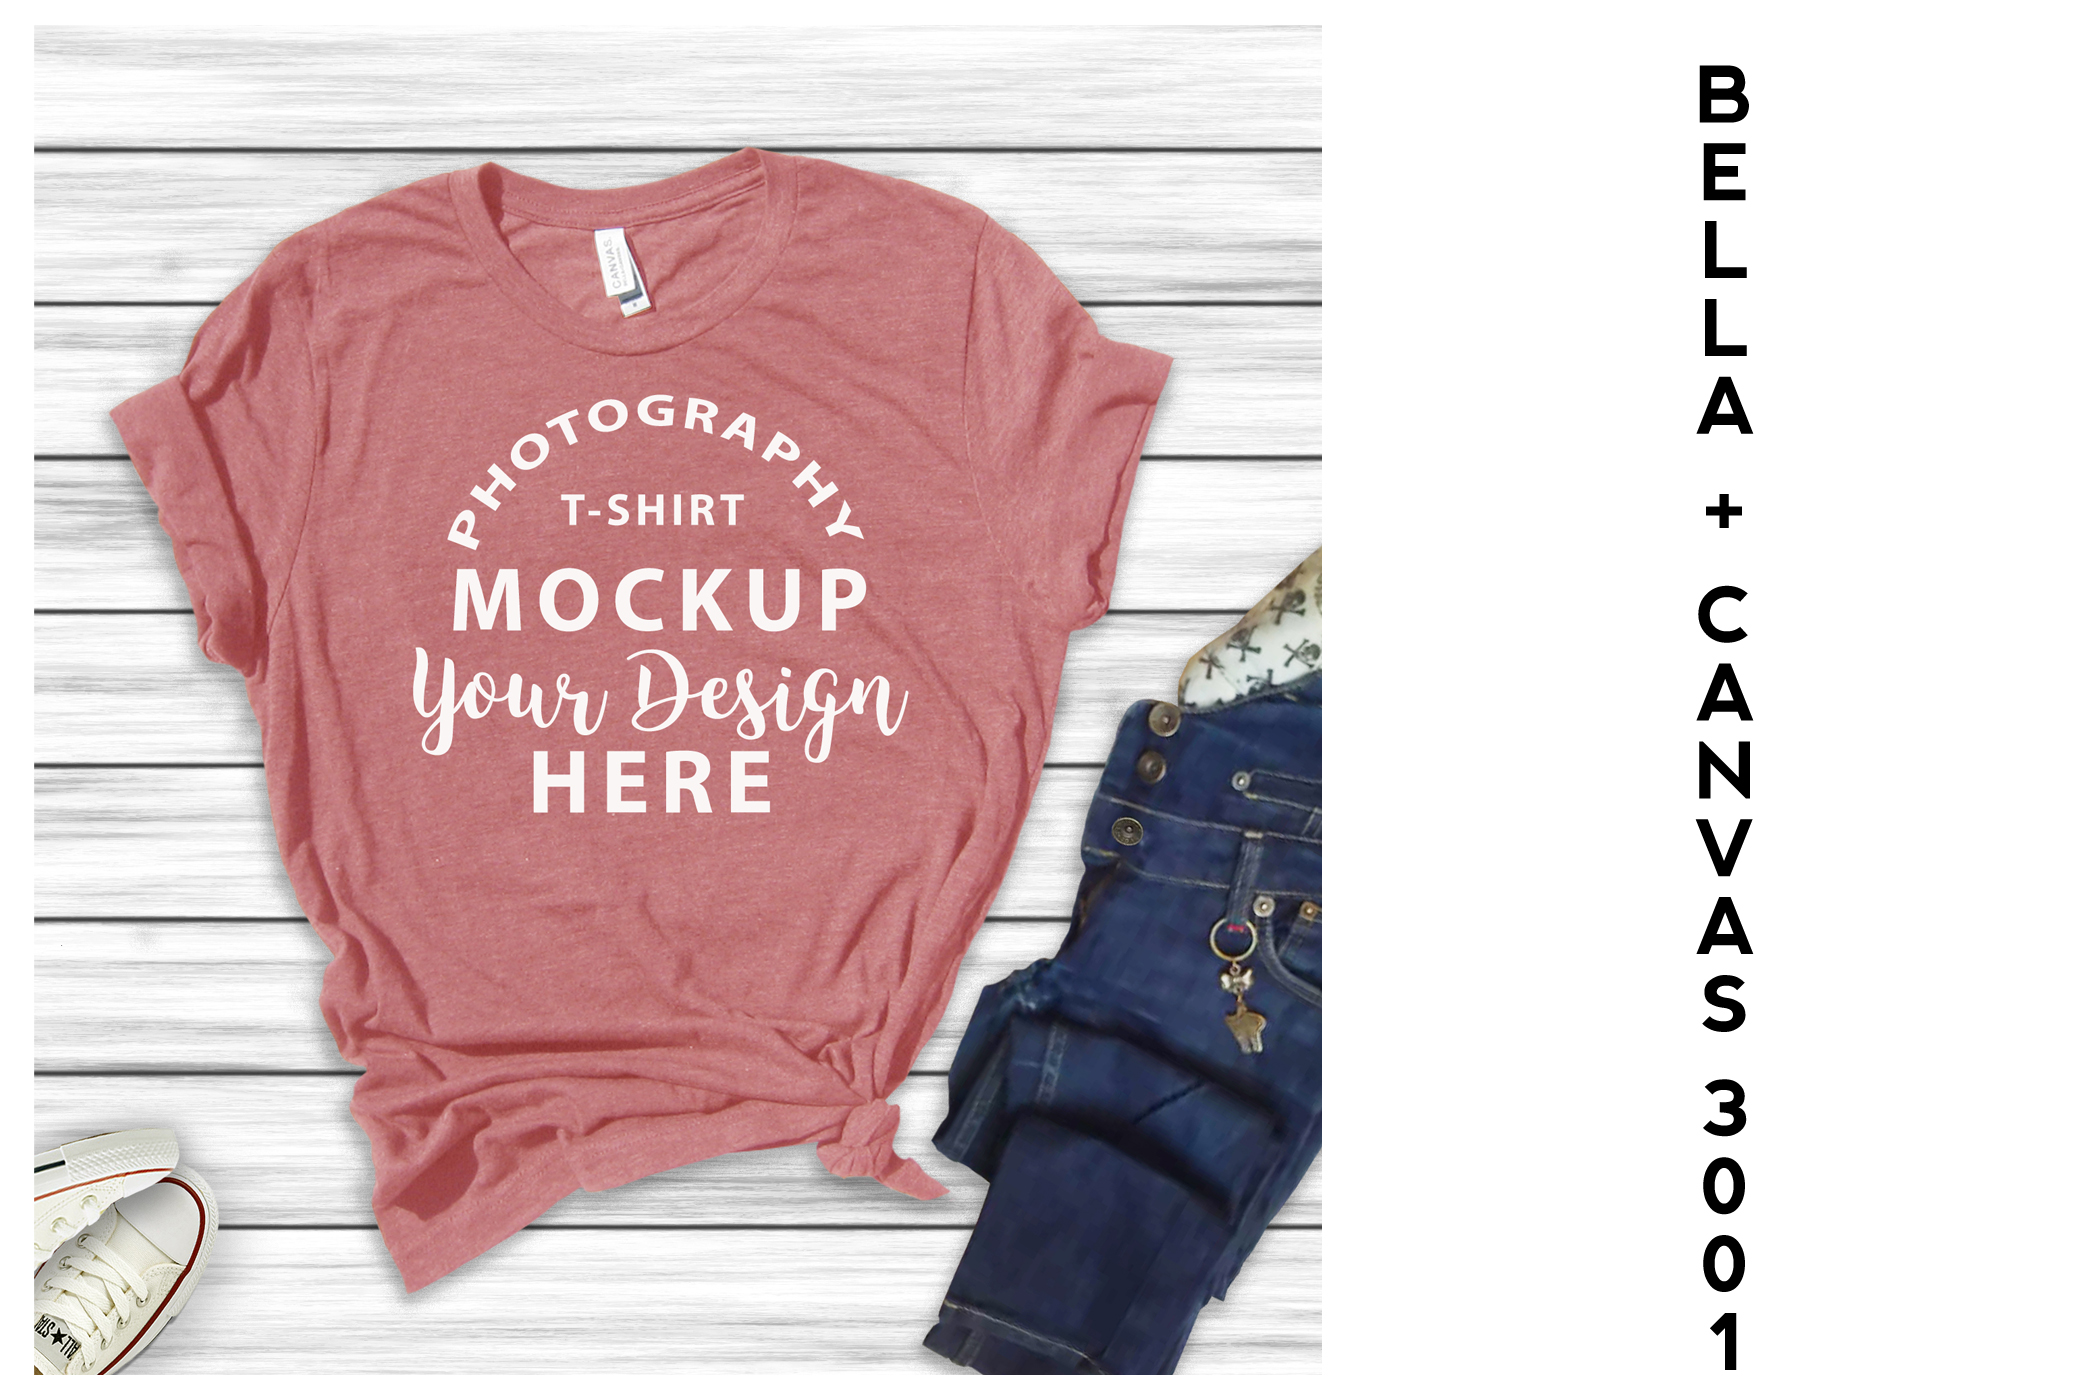 Bella Canvas 3001 All Heather T-shirts 16 mock-ups Bundle example image 9